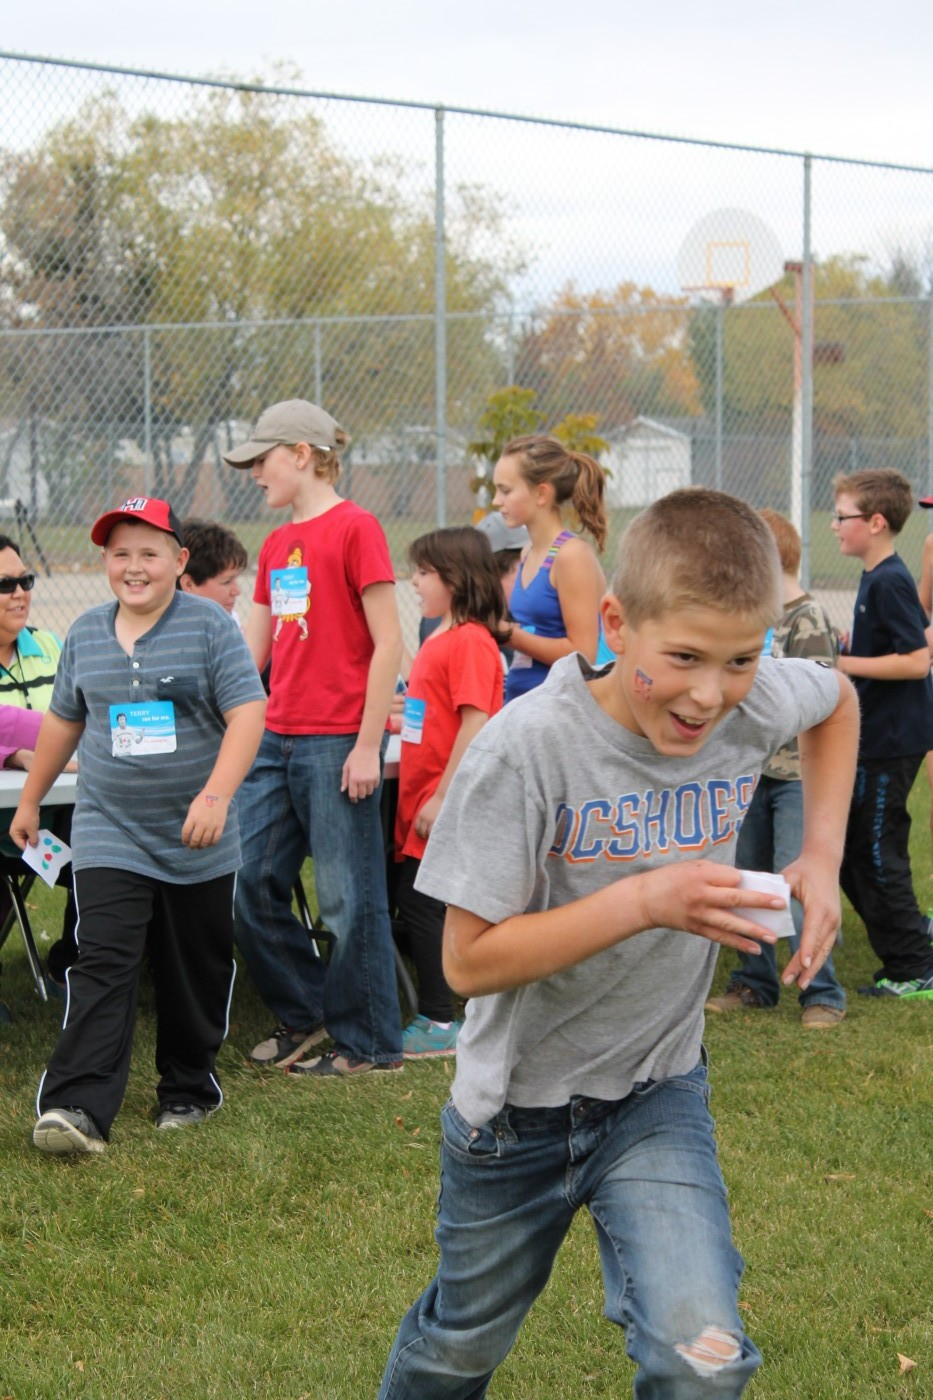 Terry Fox Run-Grey shirt boy